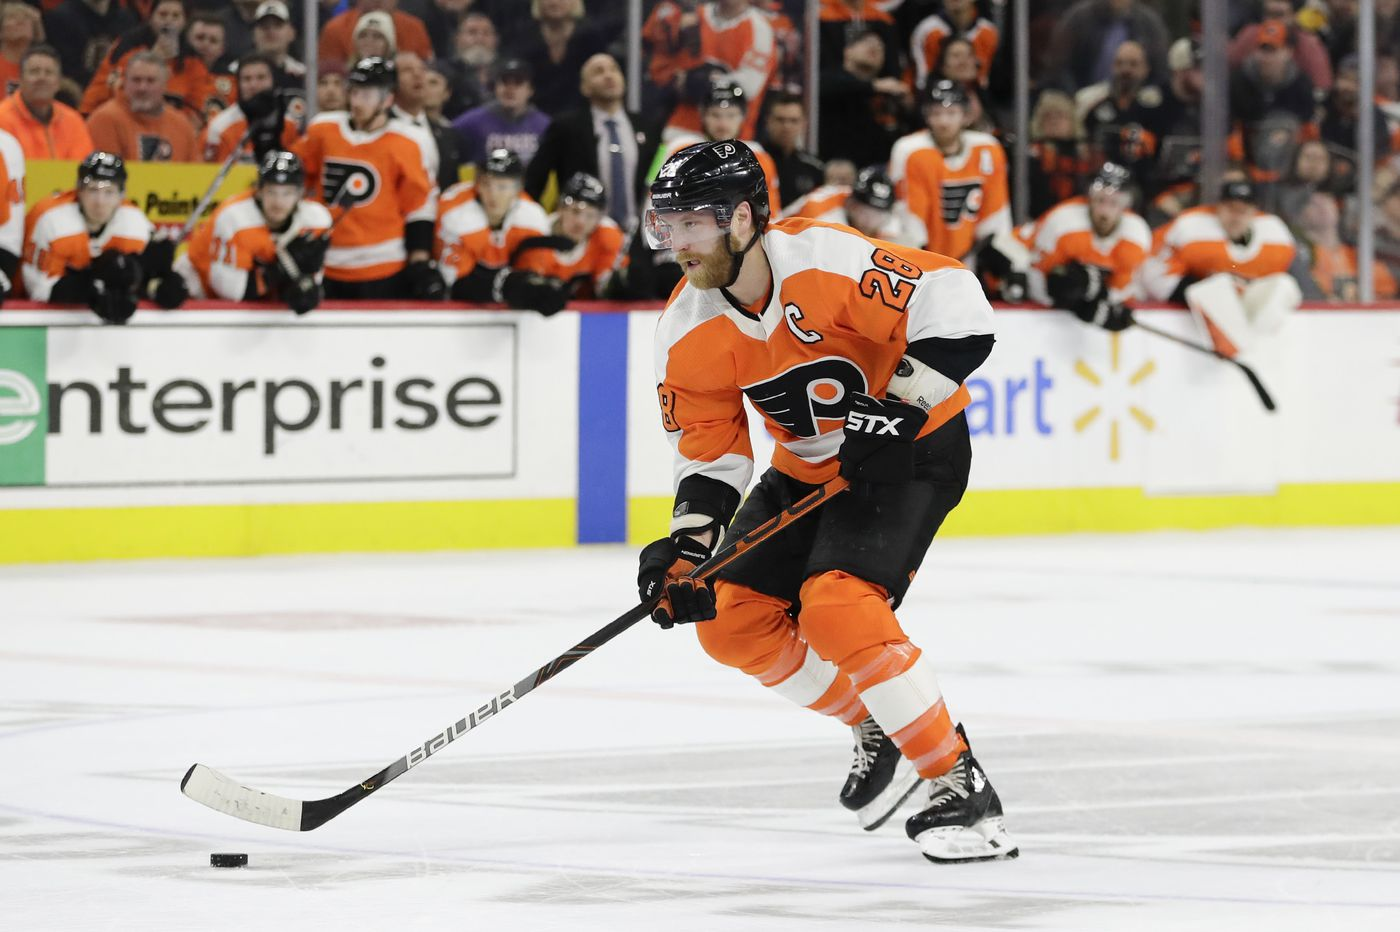 Flyers aim to pay back surging Pittsburgh Penguins in last game before NHL All-Star break